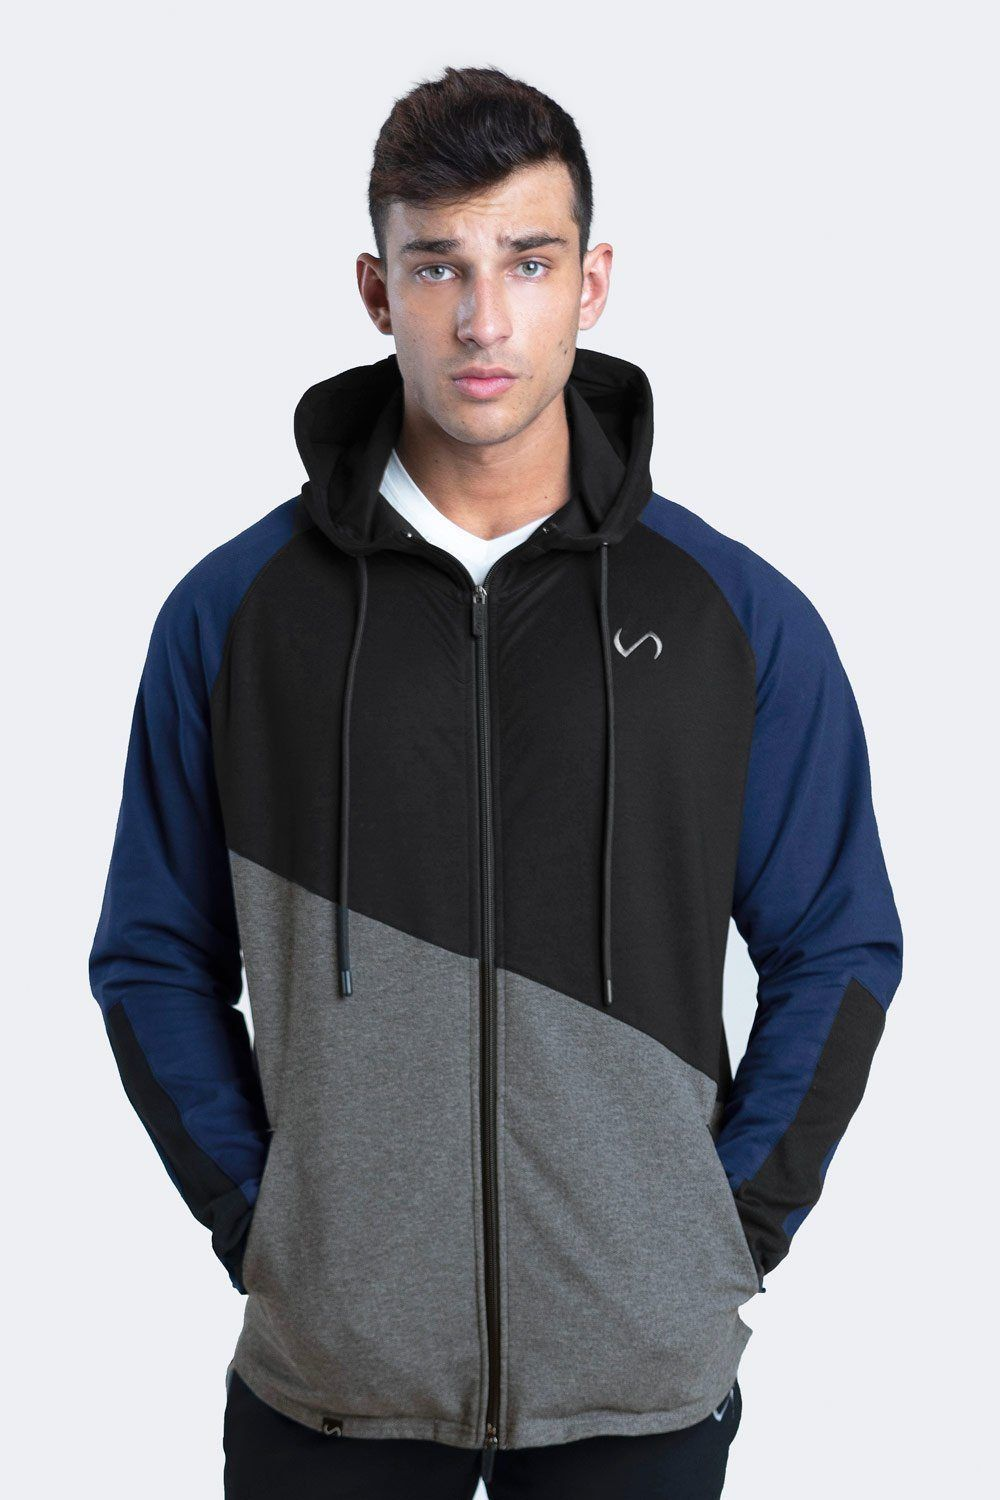 TLF Edgewise Full-Zip Hoodie - Hoodie - TLF Apparel | Take Life Further